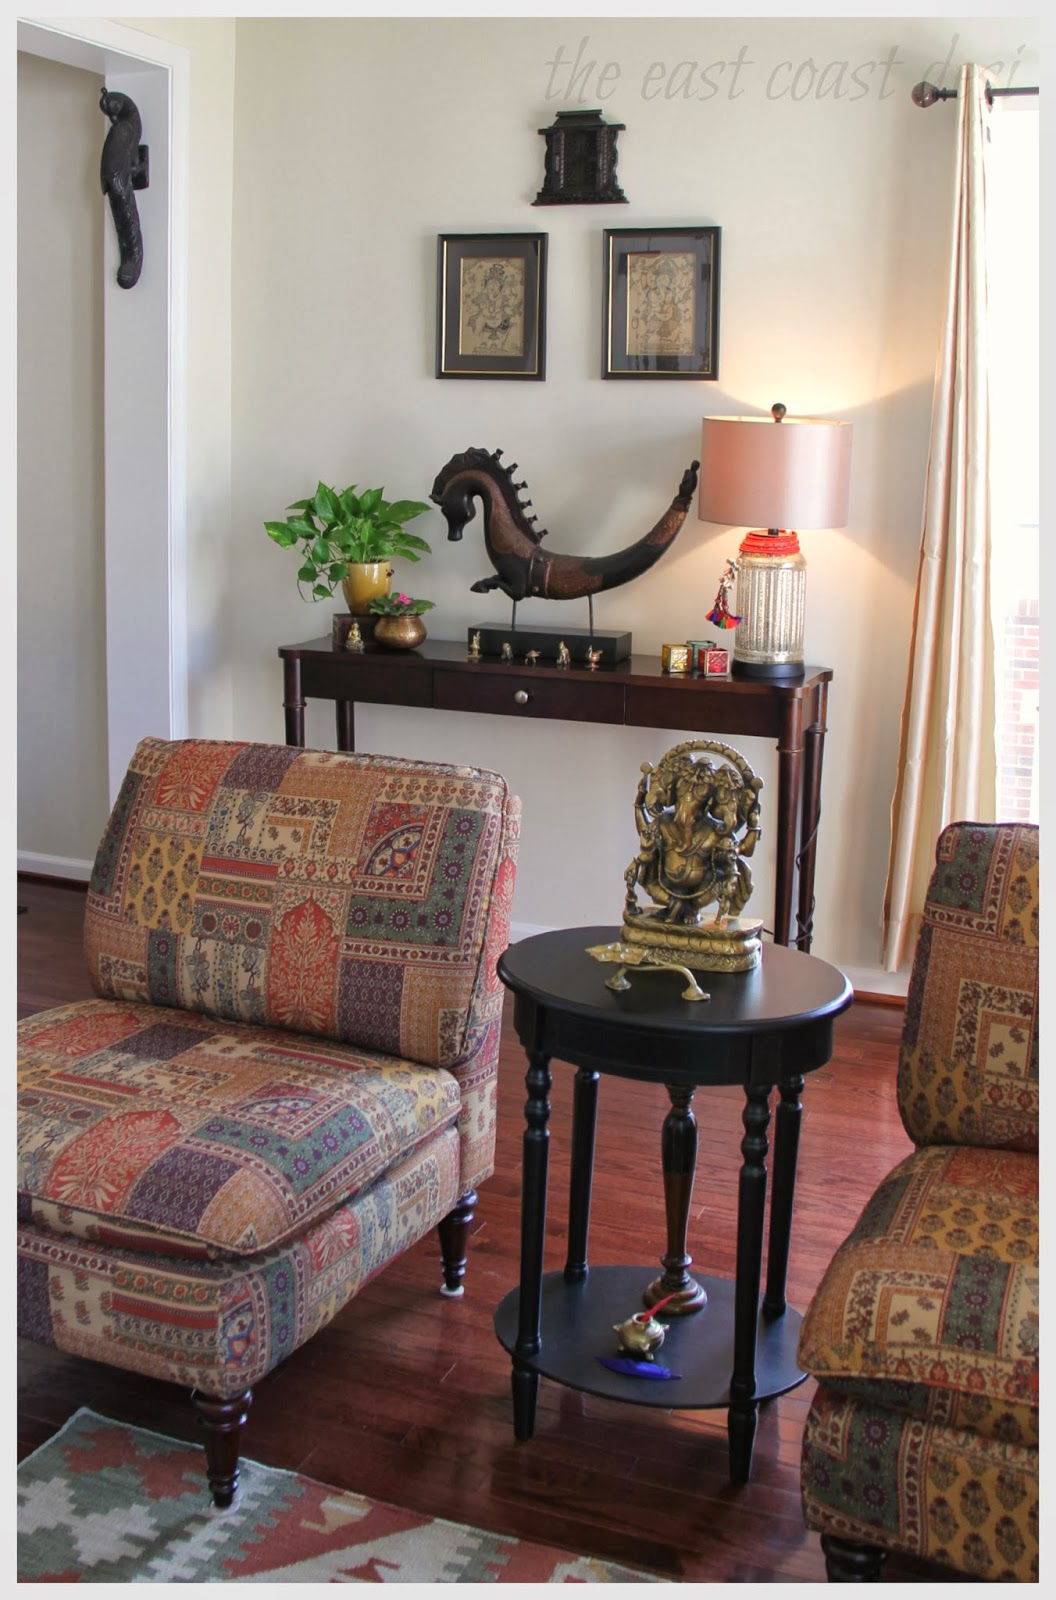 The east coast desi my living room a reflection of india for Interior of indian living room